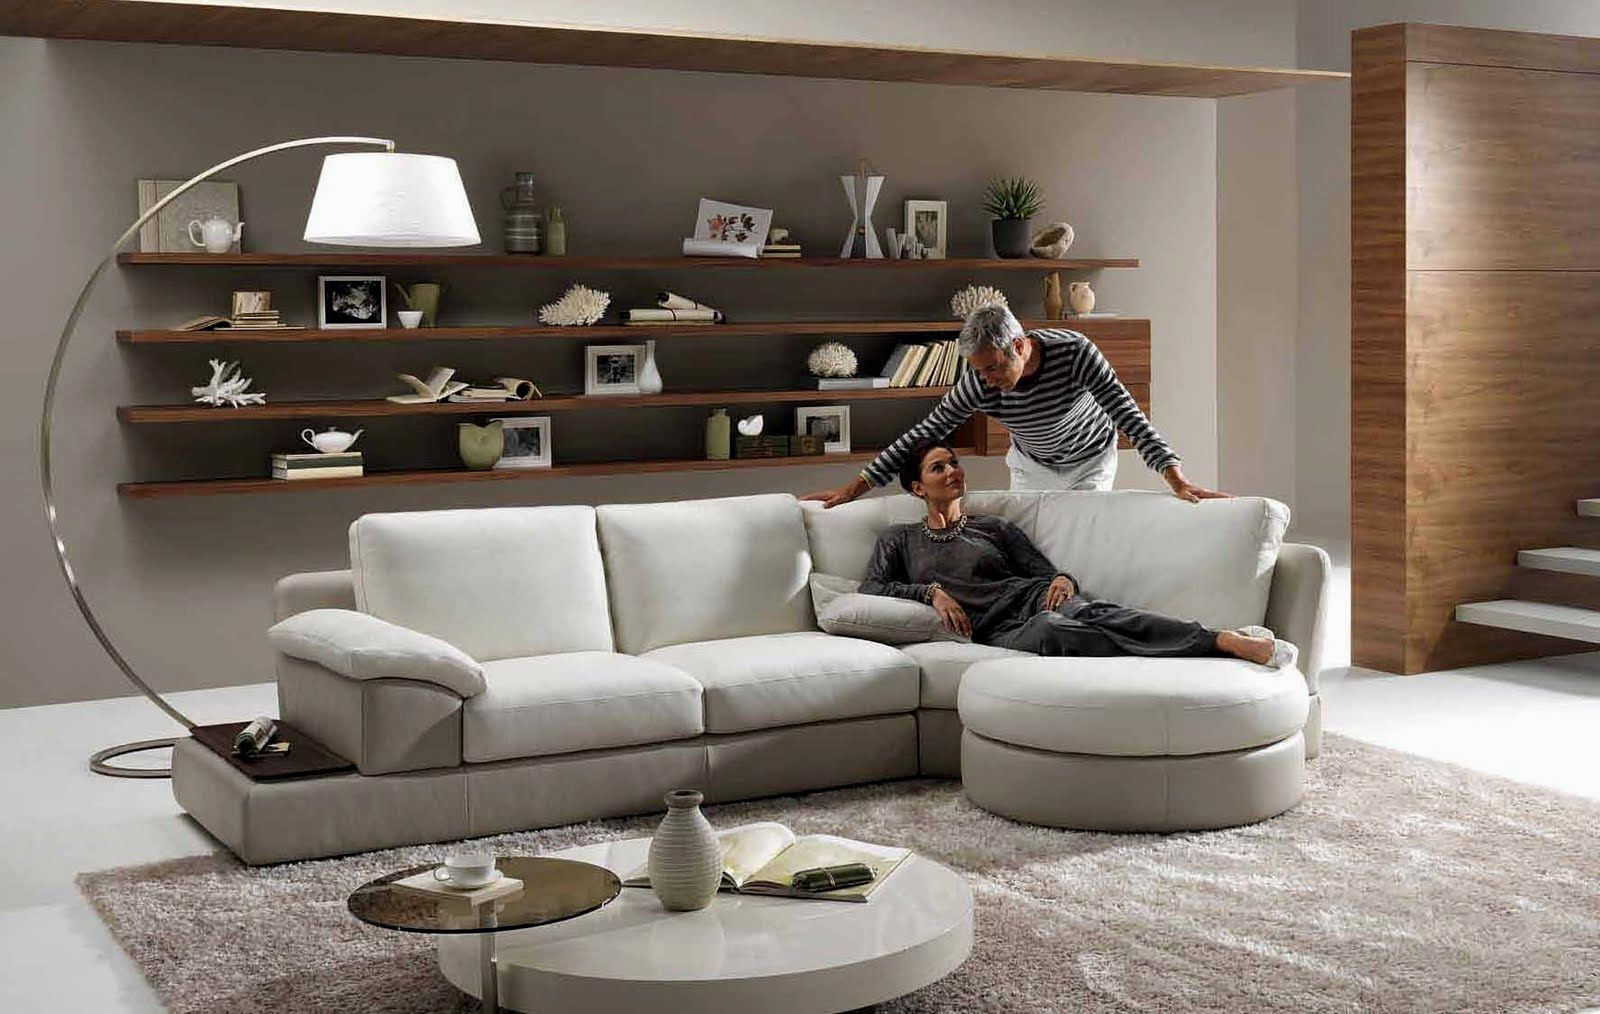 stylish sofa bed sectional layout-Inspirational sofa Bed Sectional Pattern